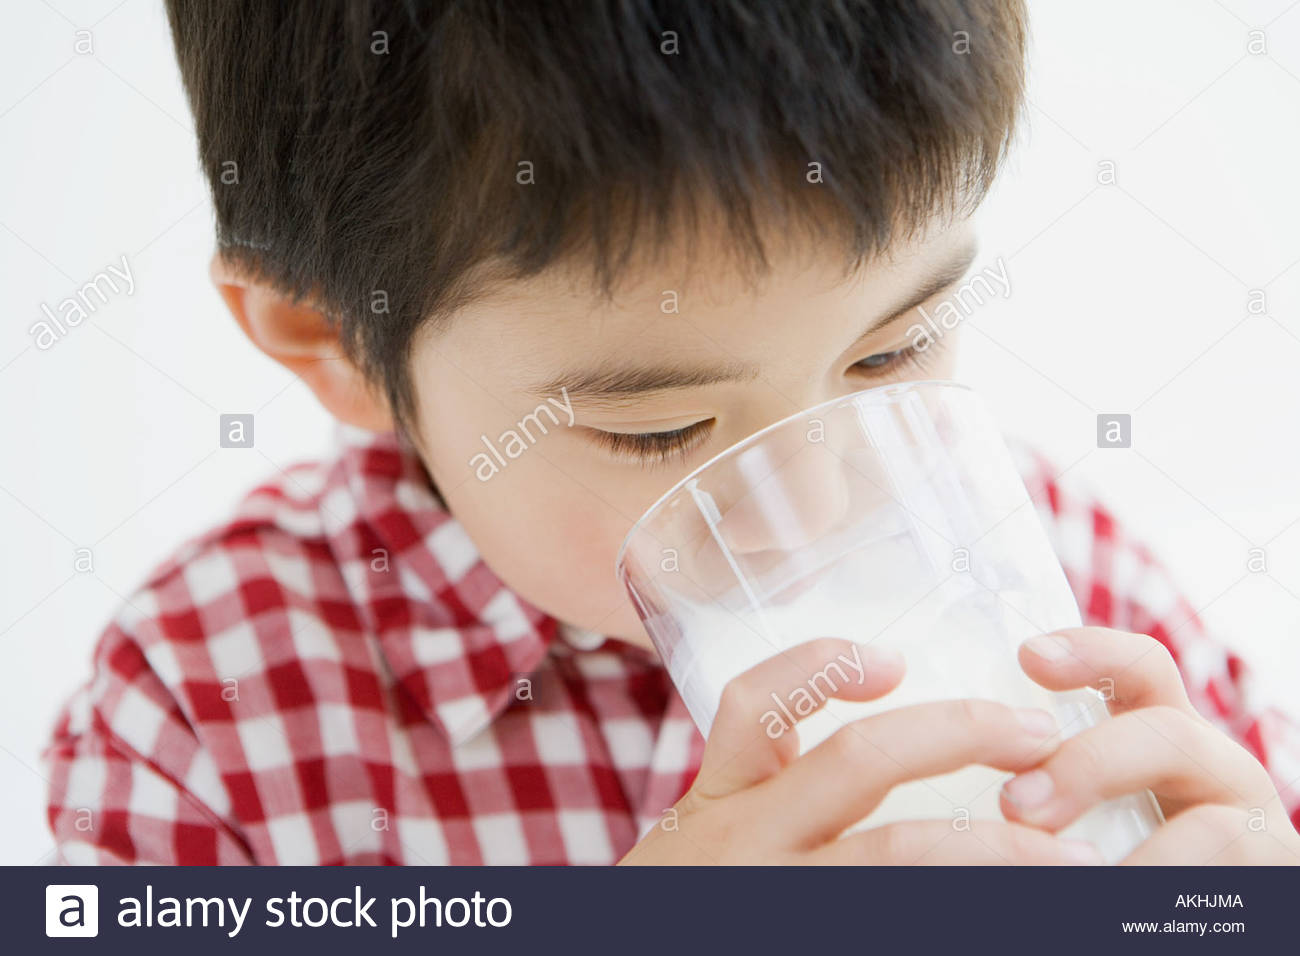 Asian boy drinking milk - Stock Image